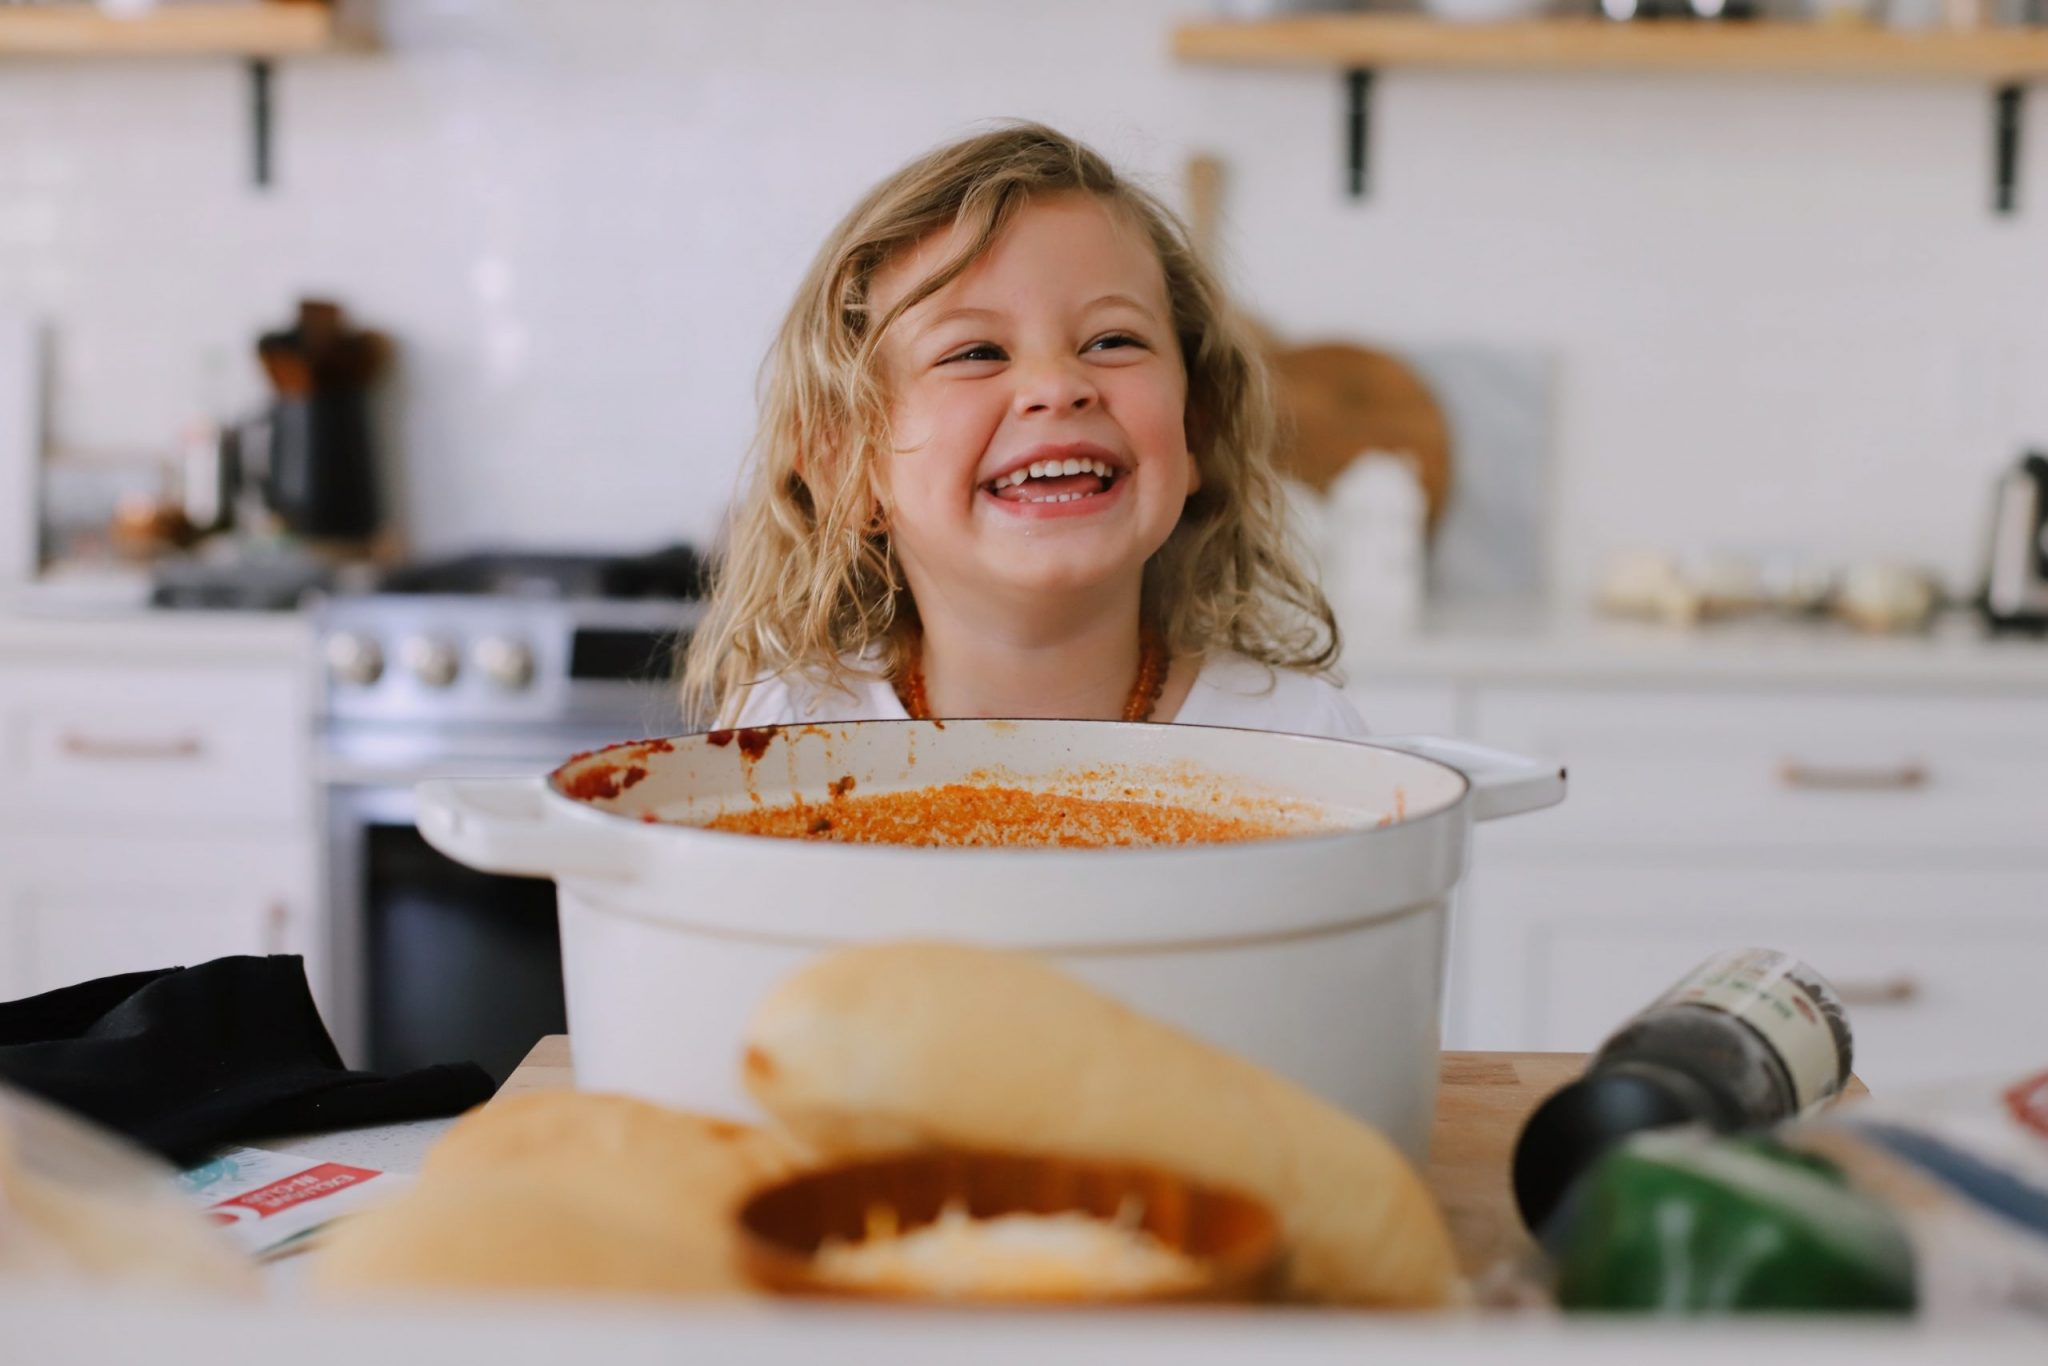 Easy Family Favorite Chili recipe! Make this delicious classic homemade chili in the crockpot or in one pot easily. It's THE BEST CHILI, and my family asks me to make it over and over. |  Chili Recipe by popular Florida lifestyle blog, Fresh Mommy Blog: image of a young girl standing in front of a pot of chili.